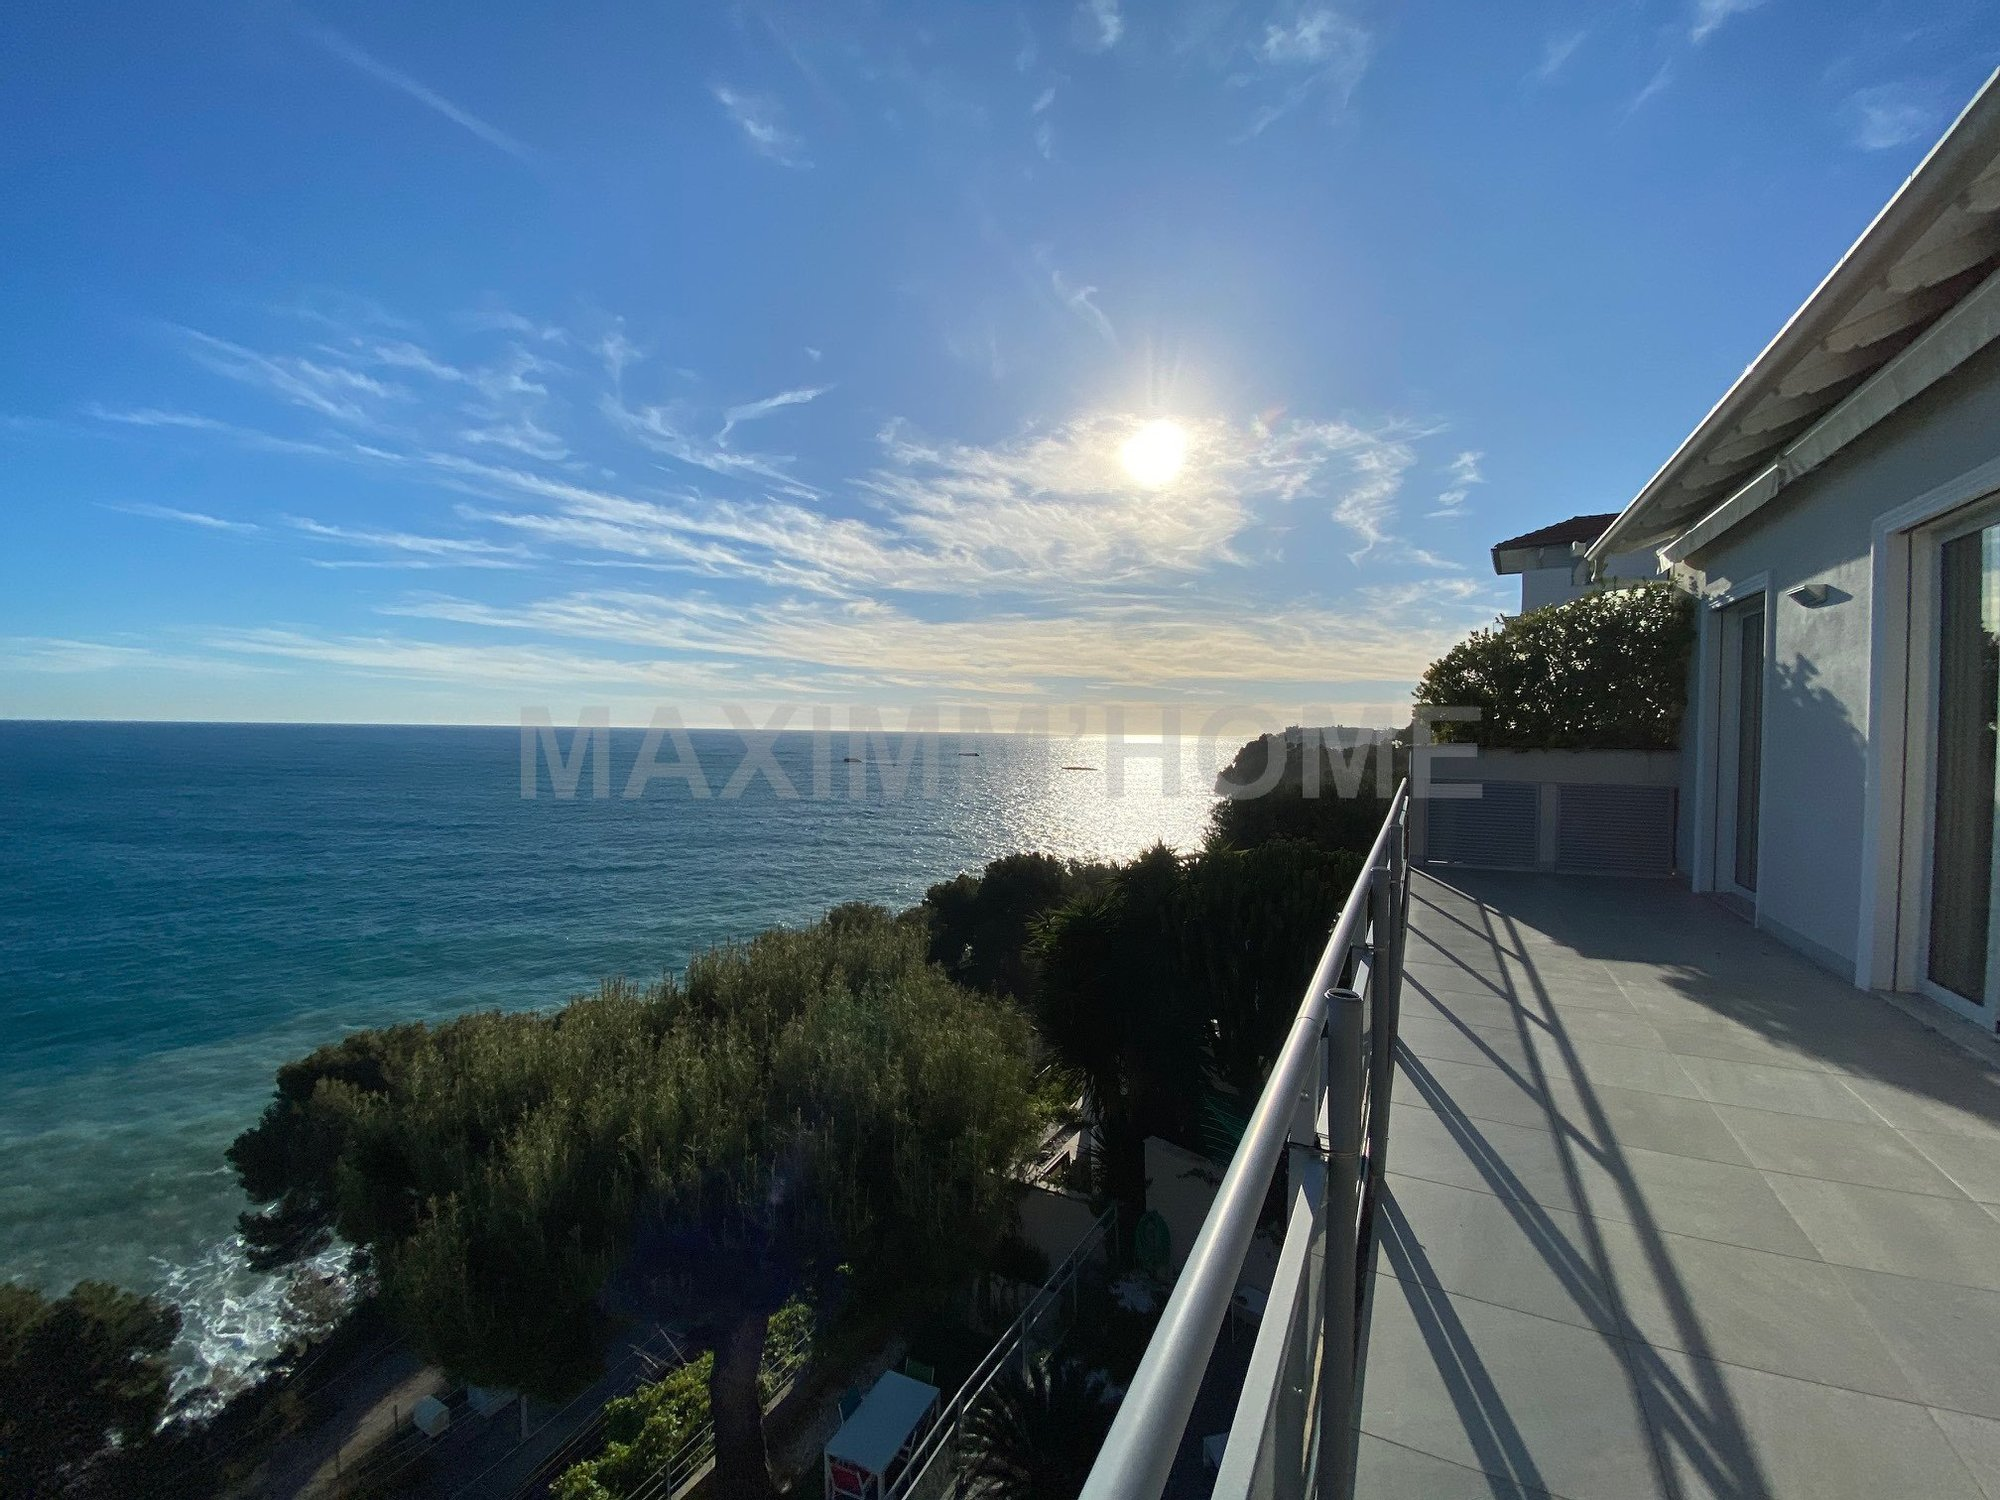 Apartment in Roquebrune-Cap-Martin, Provence-Alpes-Côte d'Azur, France 1